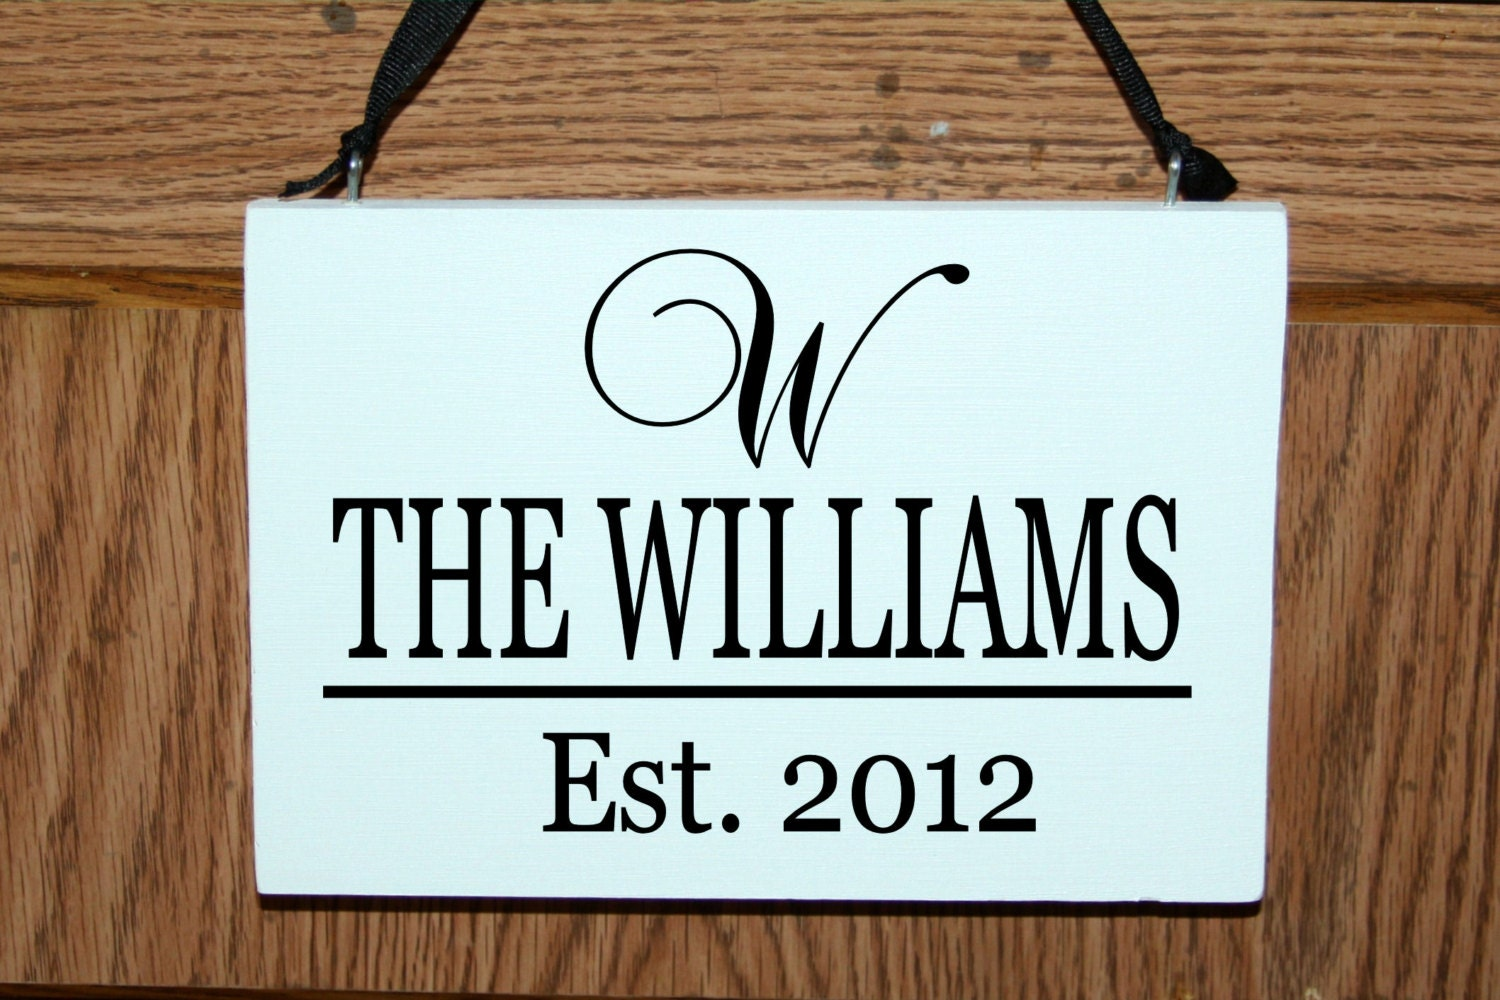 Personalized family name door hanger sign with established for Door name signs